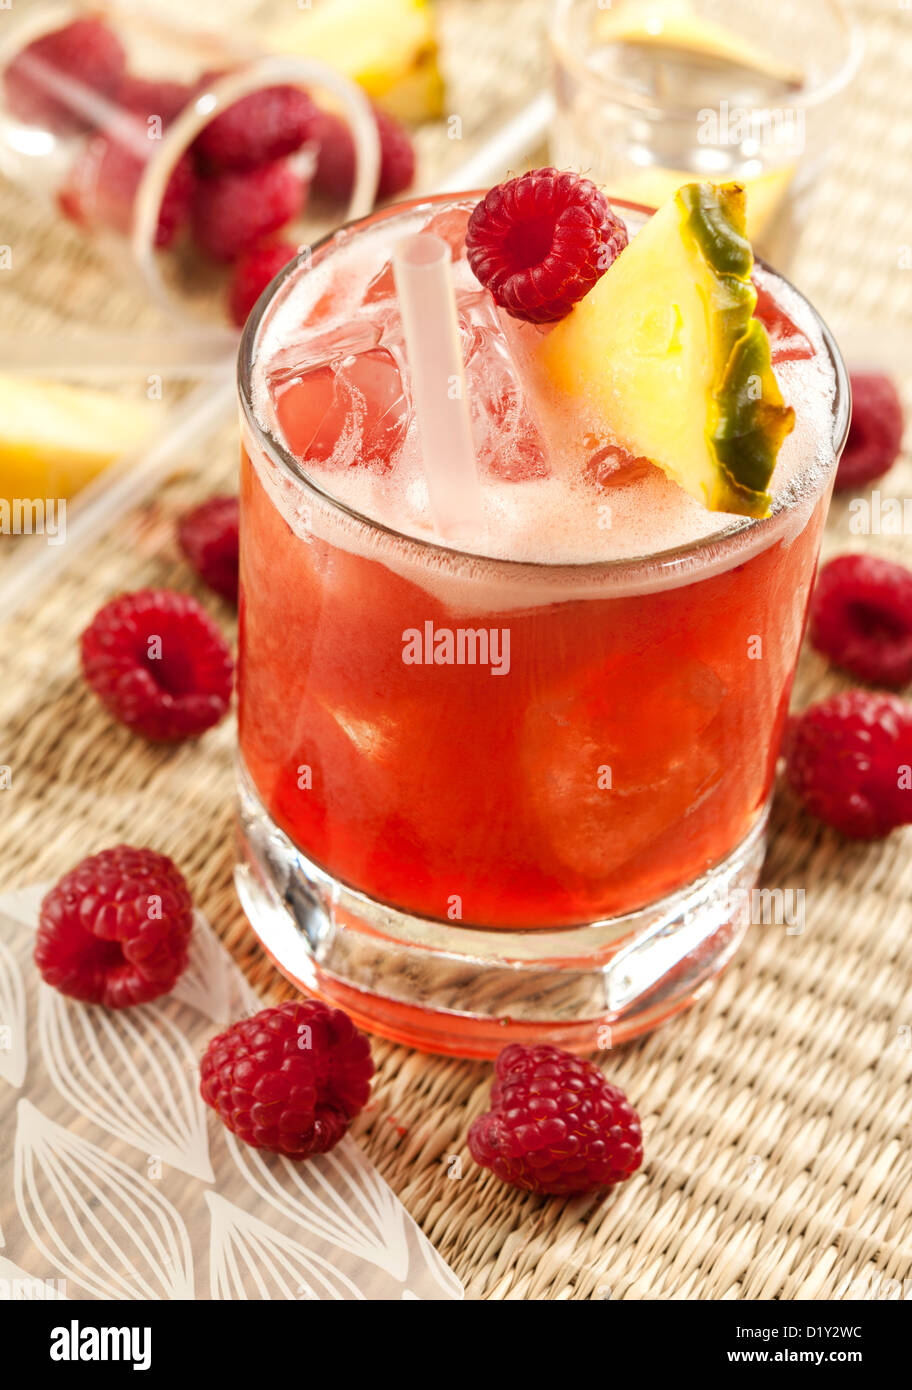 Drink with raspberry, pineapple and peach - Stock Image